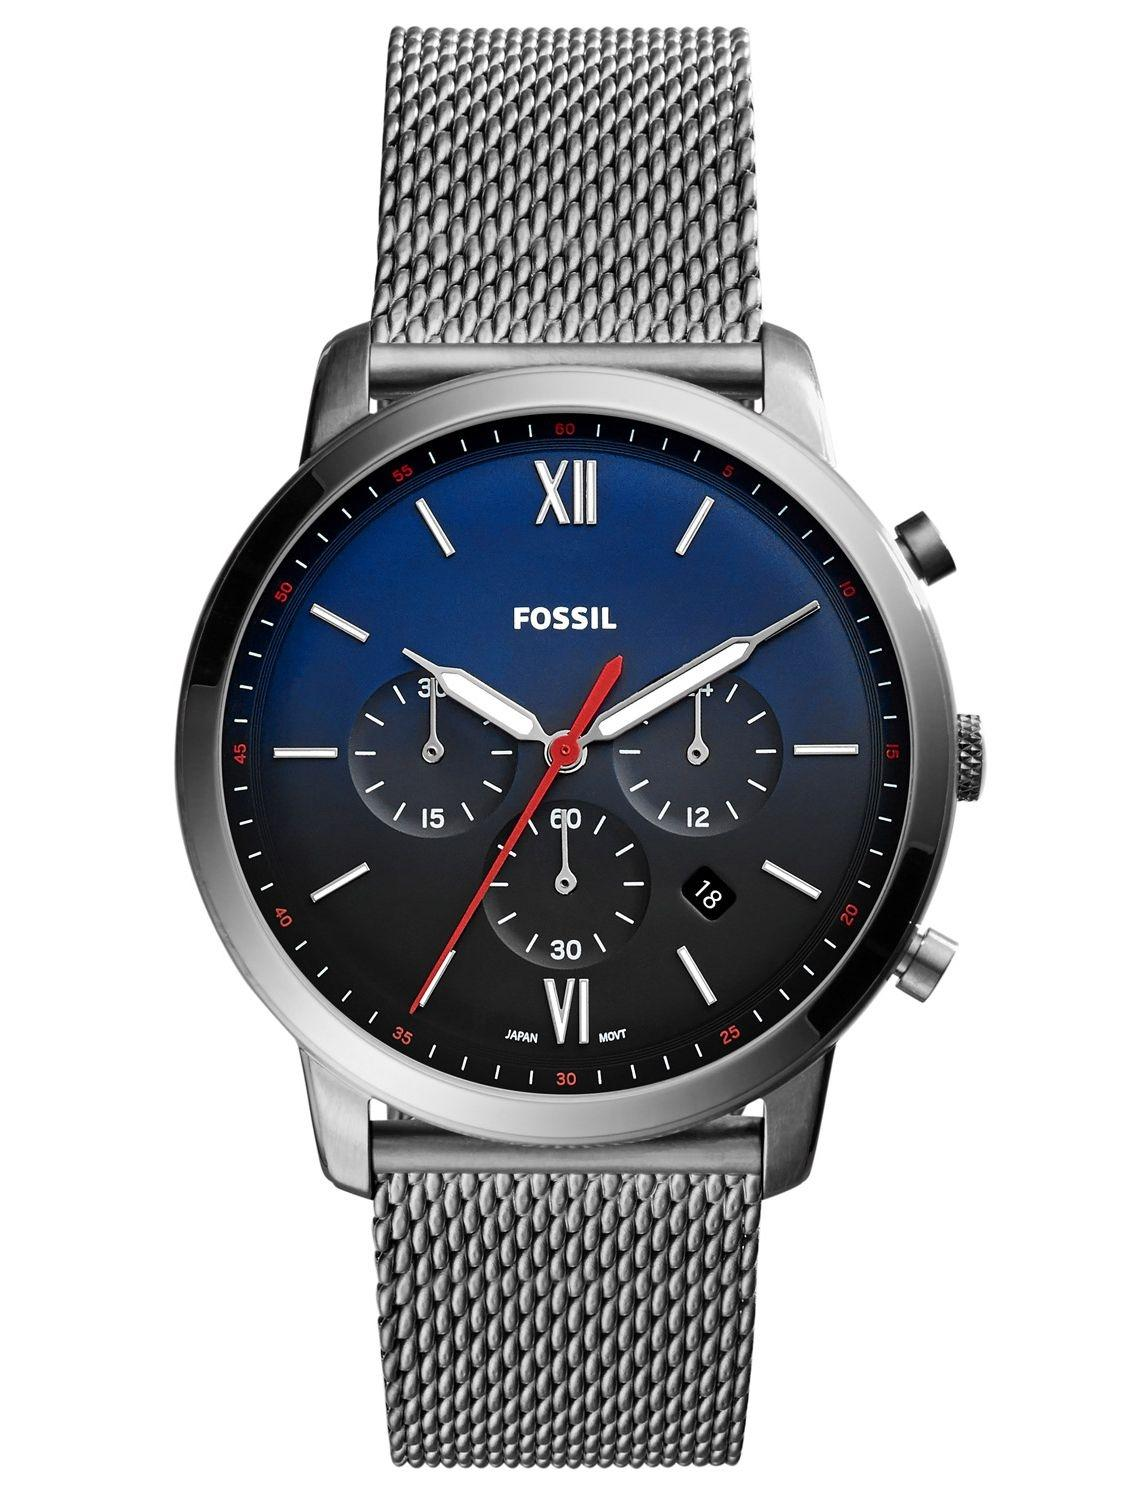 Fossil Es3707 Jacqueline Gray Leather Watch Rose Gold Buy At Best Price In Nepal Daraz Neutra Blue Dial Chronograph For Men Fs5383